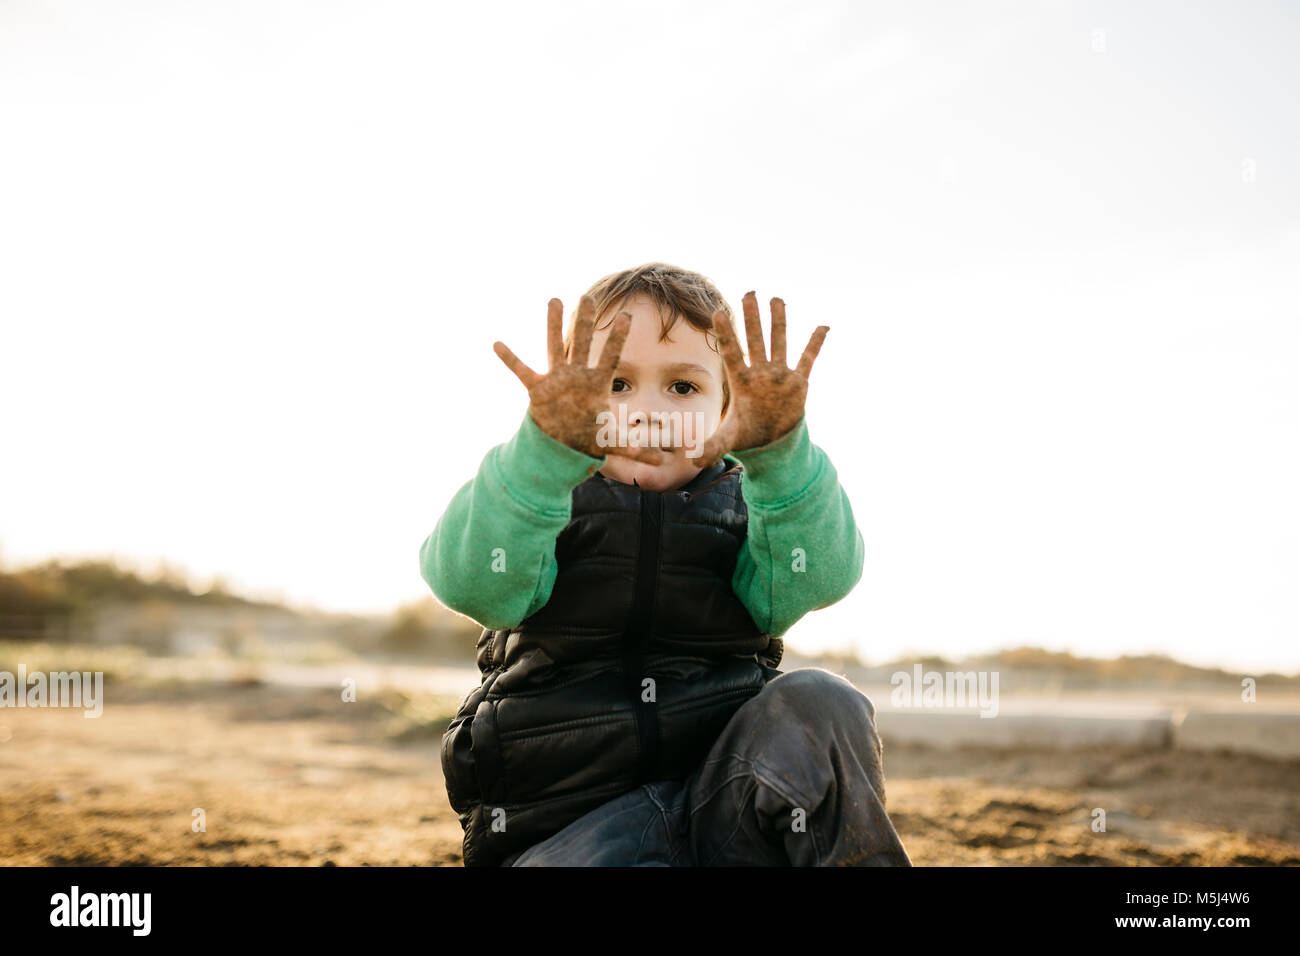 Boy playing on the beach in winter showing his dirty hands - Stock Image